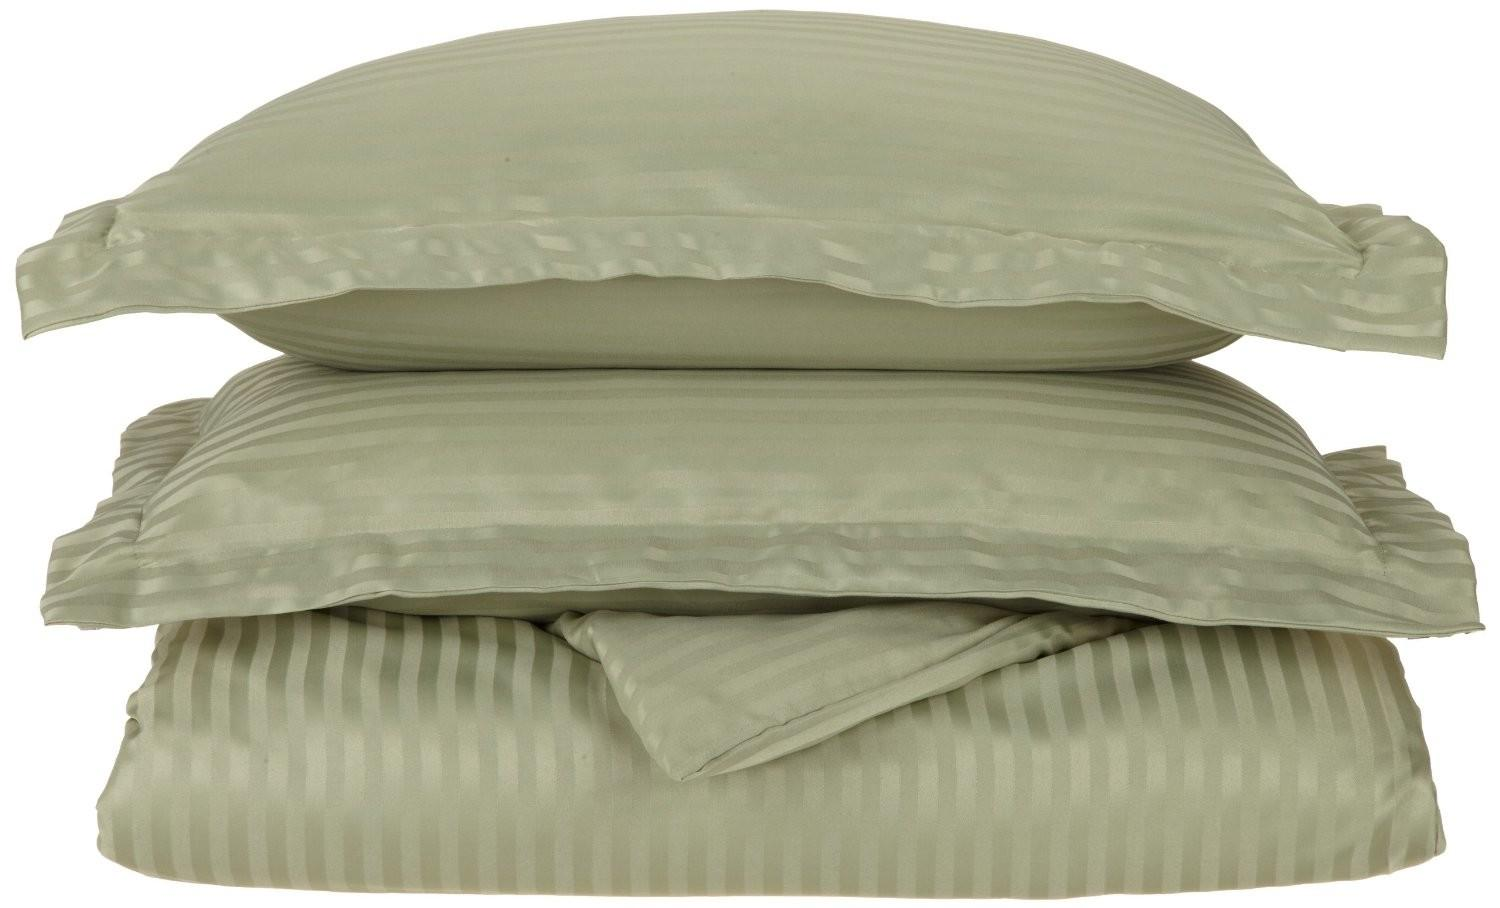 Striped Duvet Cover Set Shams Wrinkle